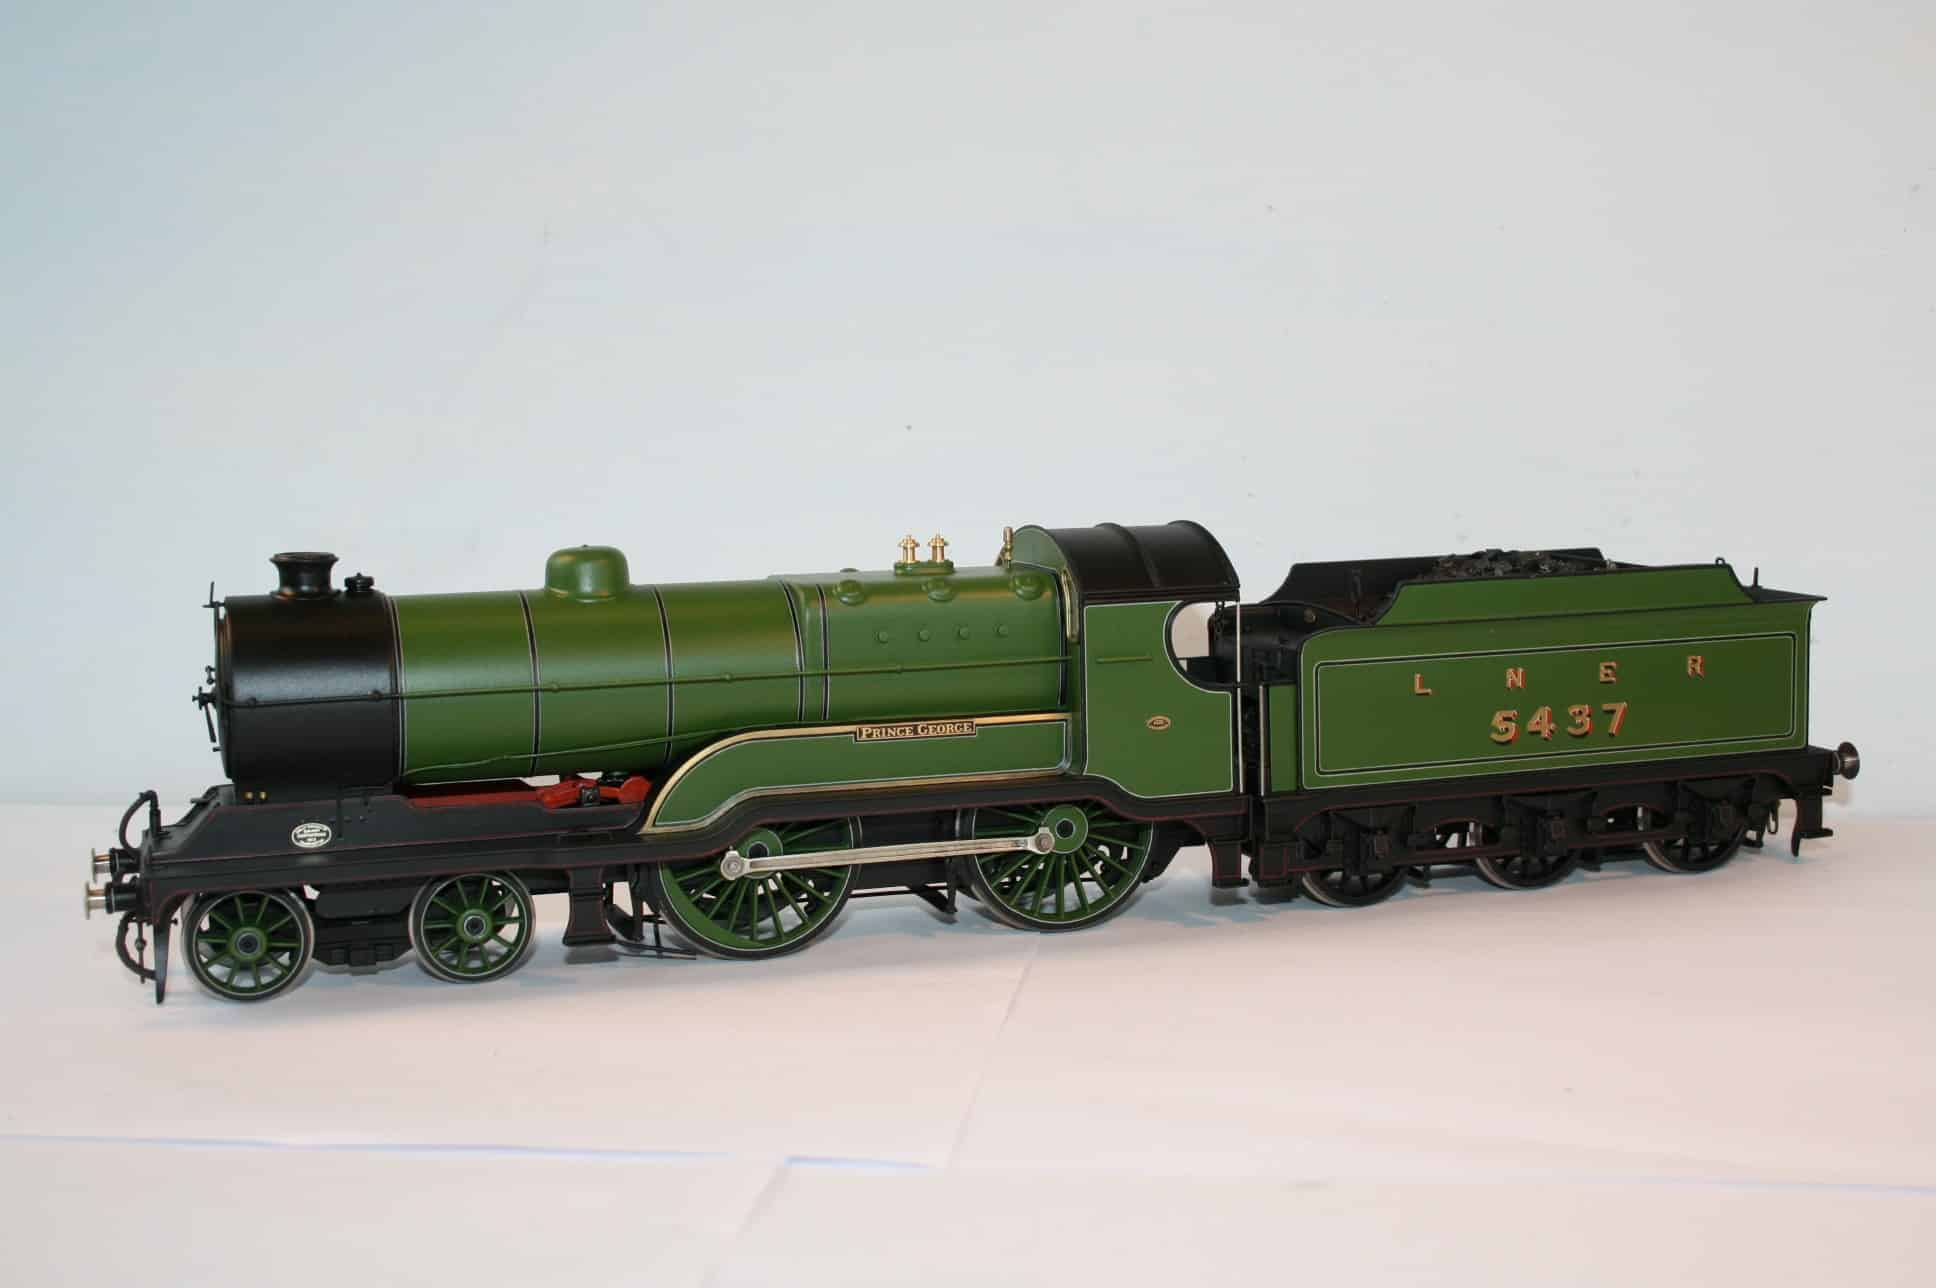 """LNER (Ex GCR) Class D10 number 5437 """"Prince George"""""""